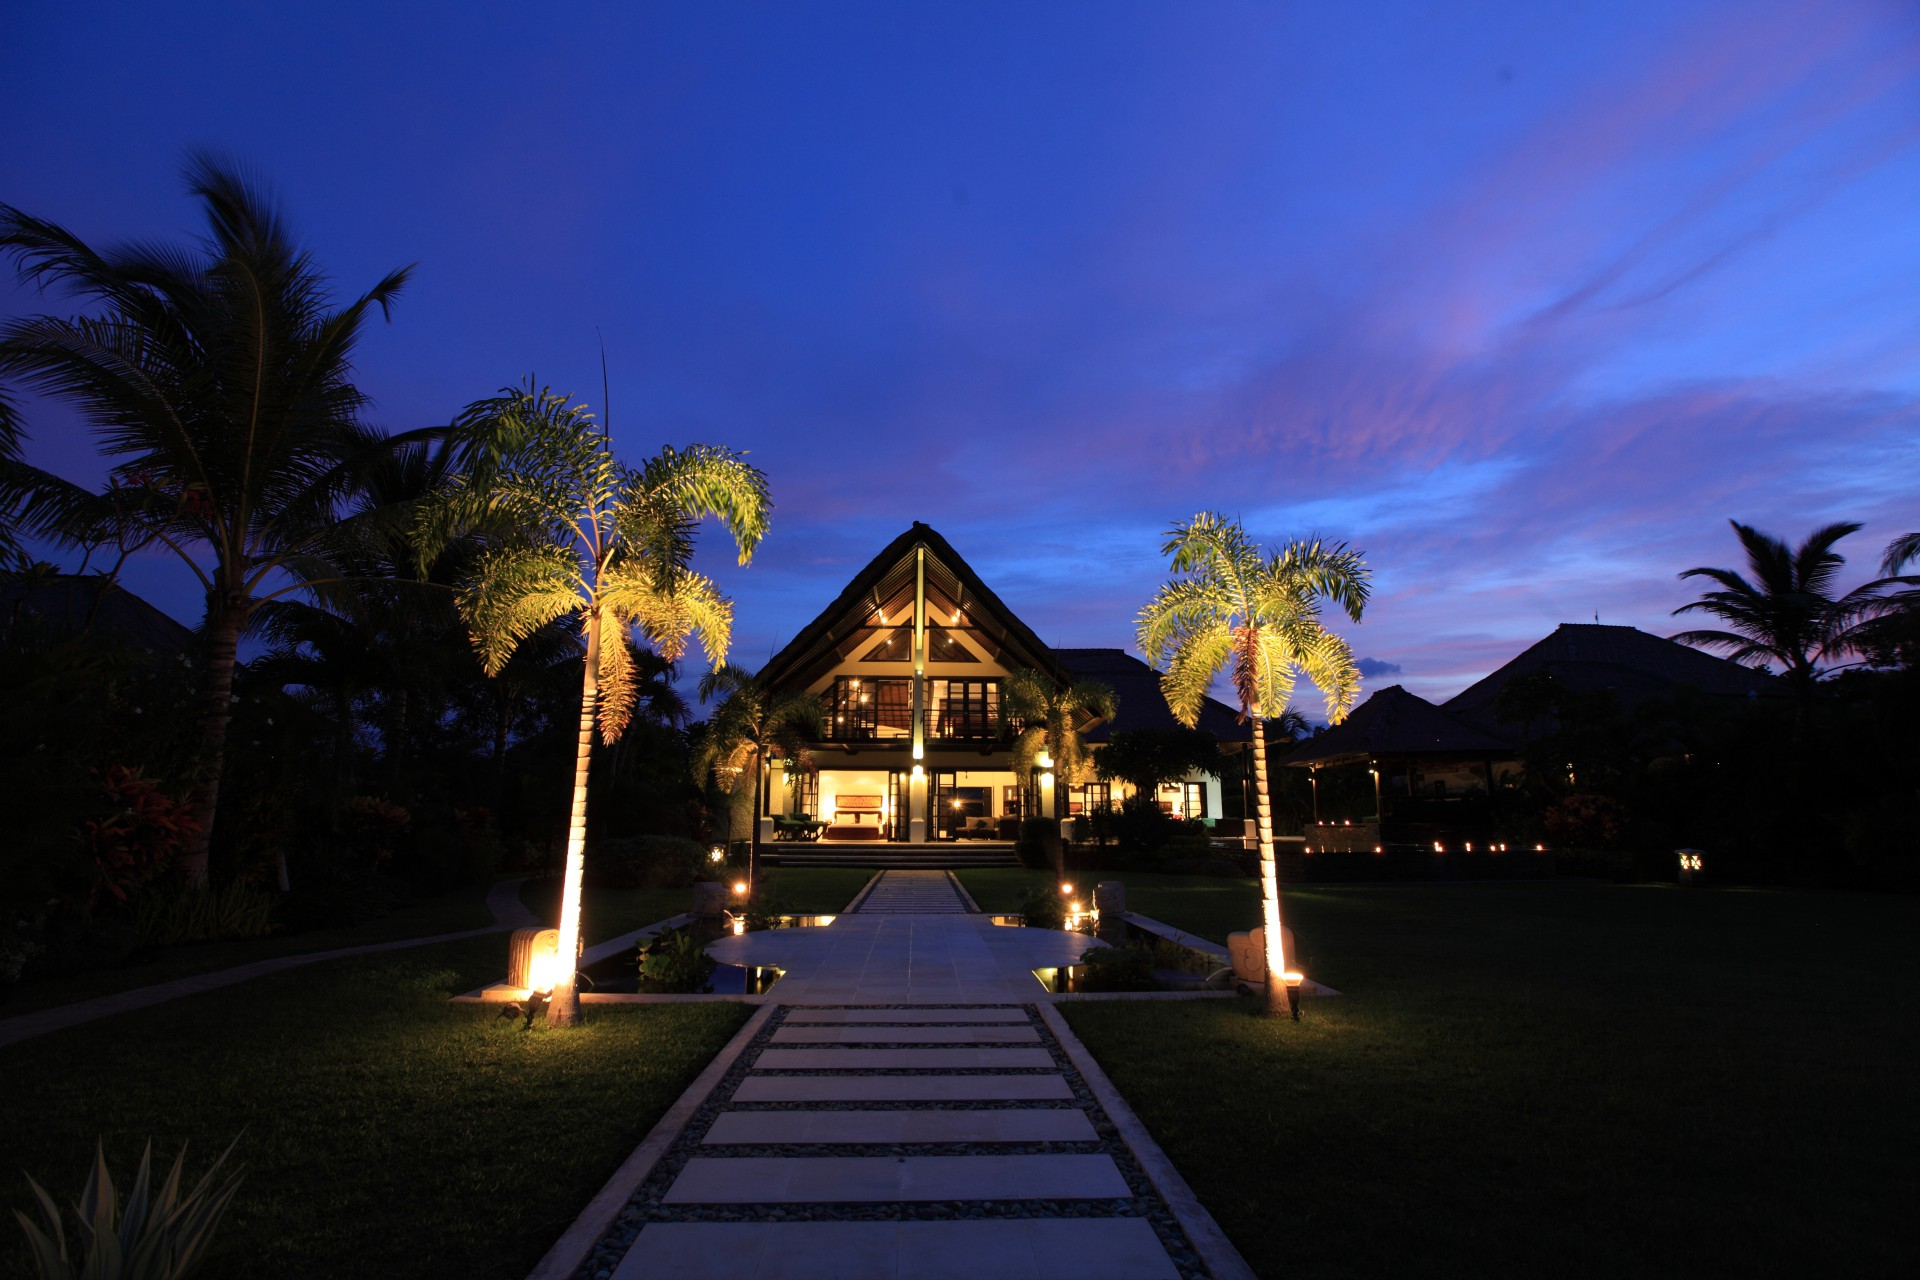 villa baruna by night